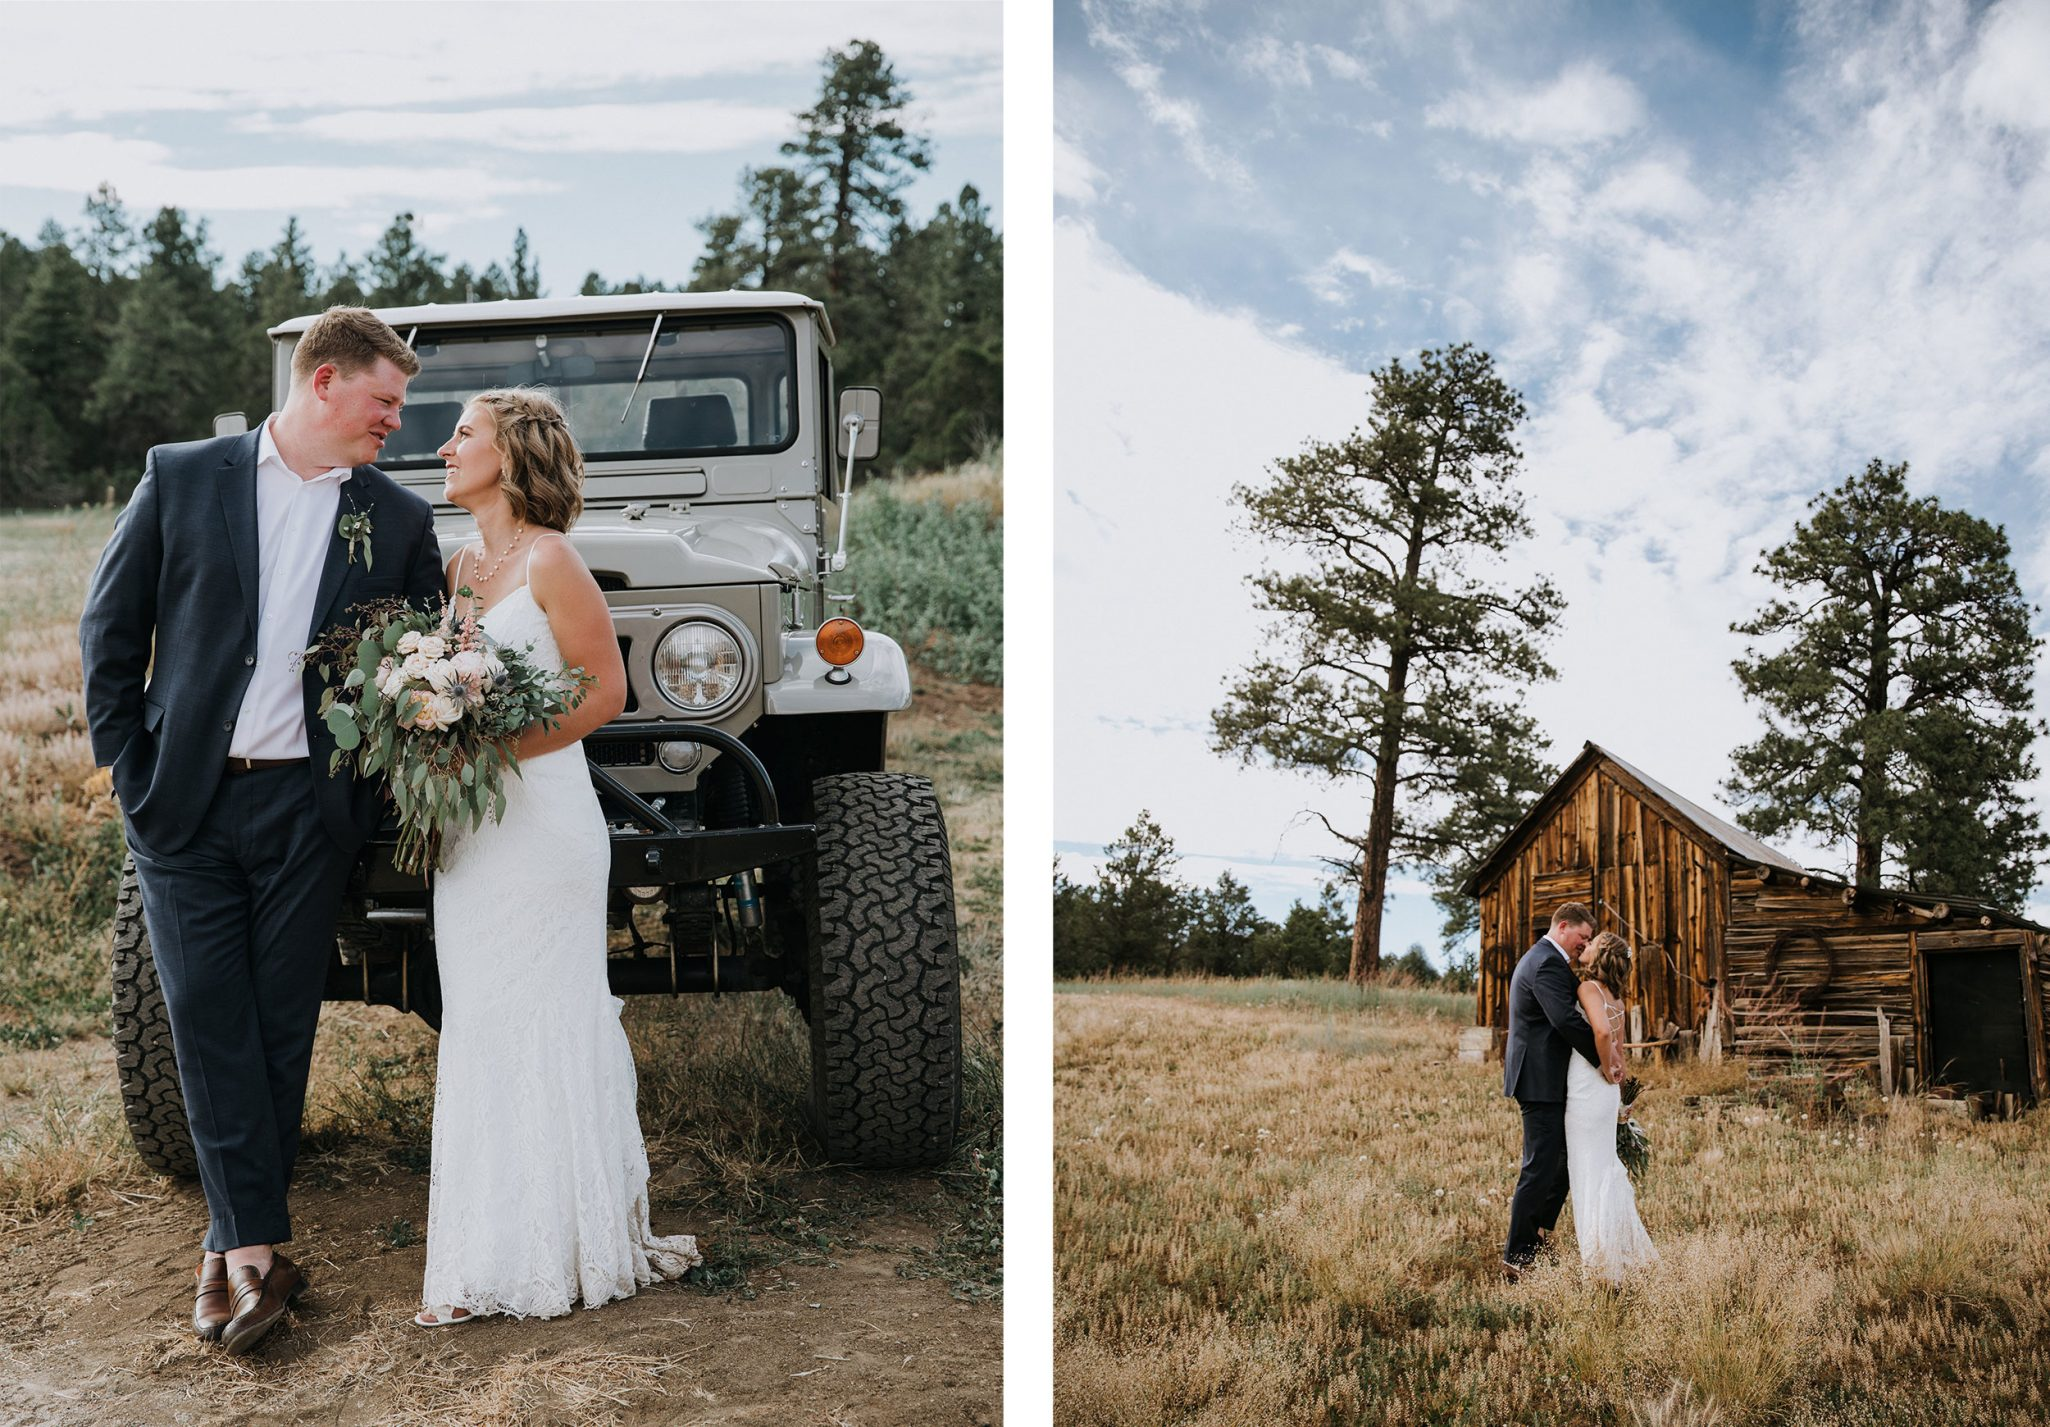 Reising stage wedding venue in Durango, Colorado